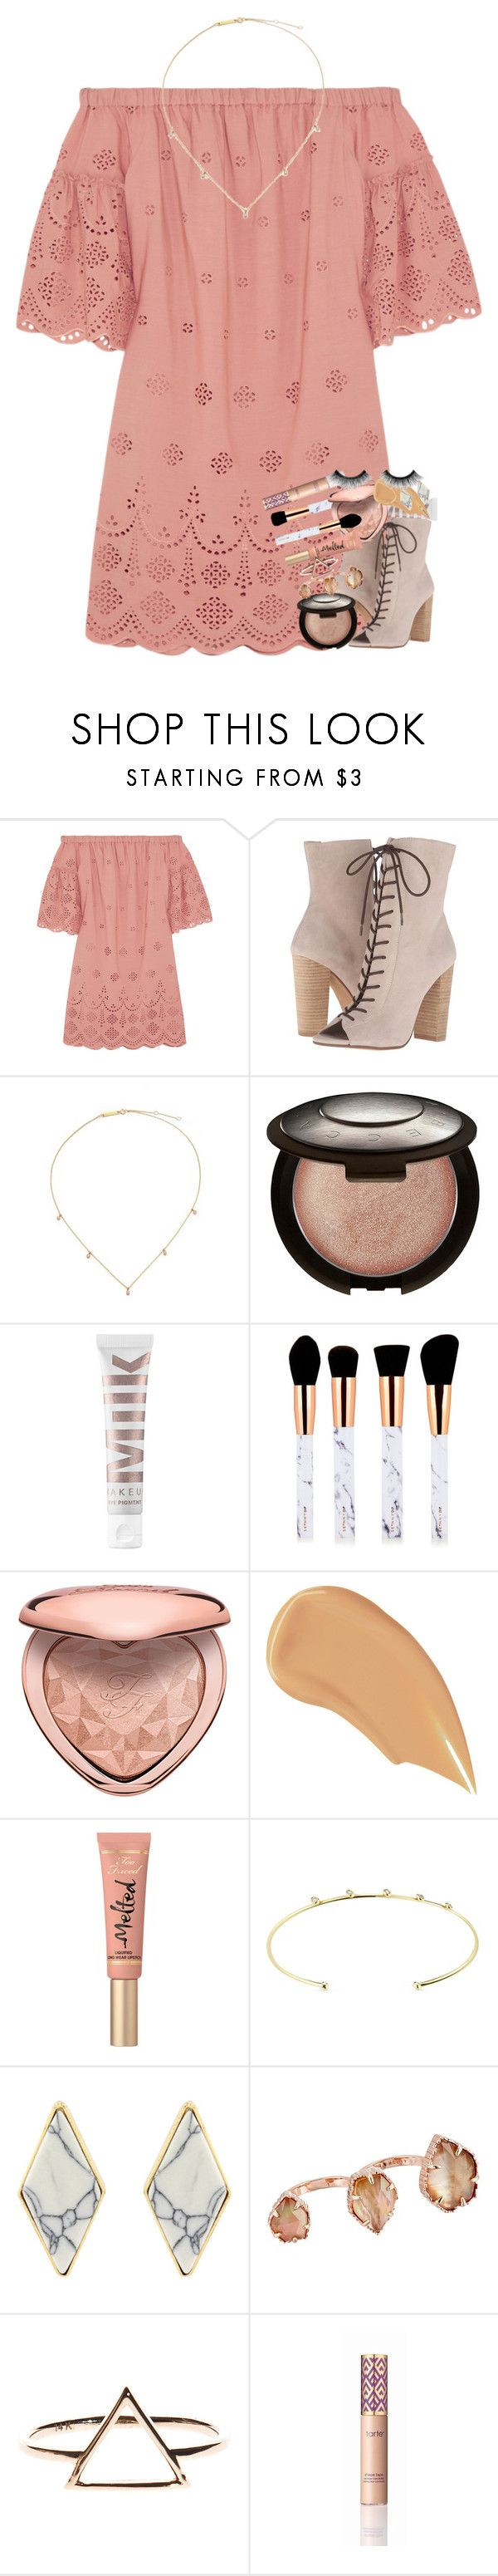 """the most dangerous woman of all is the one who refuses to rely on your sword to save herself because she carries her own."" by ellaswiftie13 on Polyvore featuring Madewell, Kristin Cavallari, Zoë Chicco, Becca, MILK MAKEUP, NARS Cosmetics, Too Faced Cosmetics, mizuki, Kendra Scott and tarte"